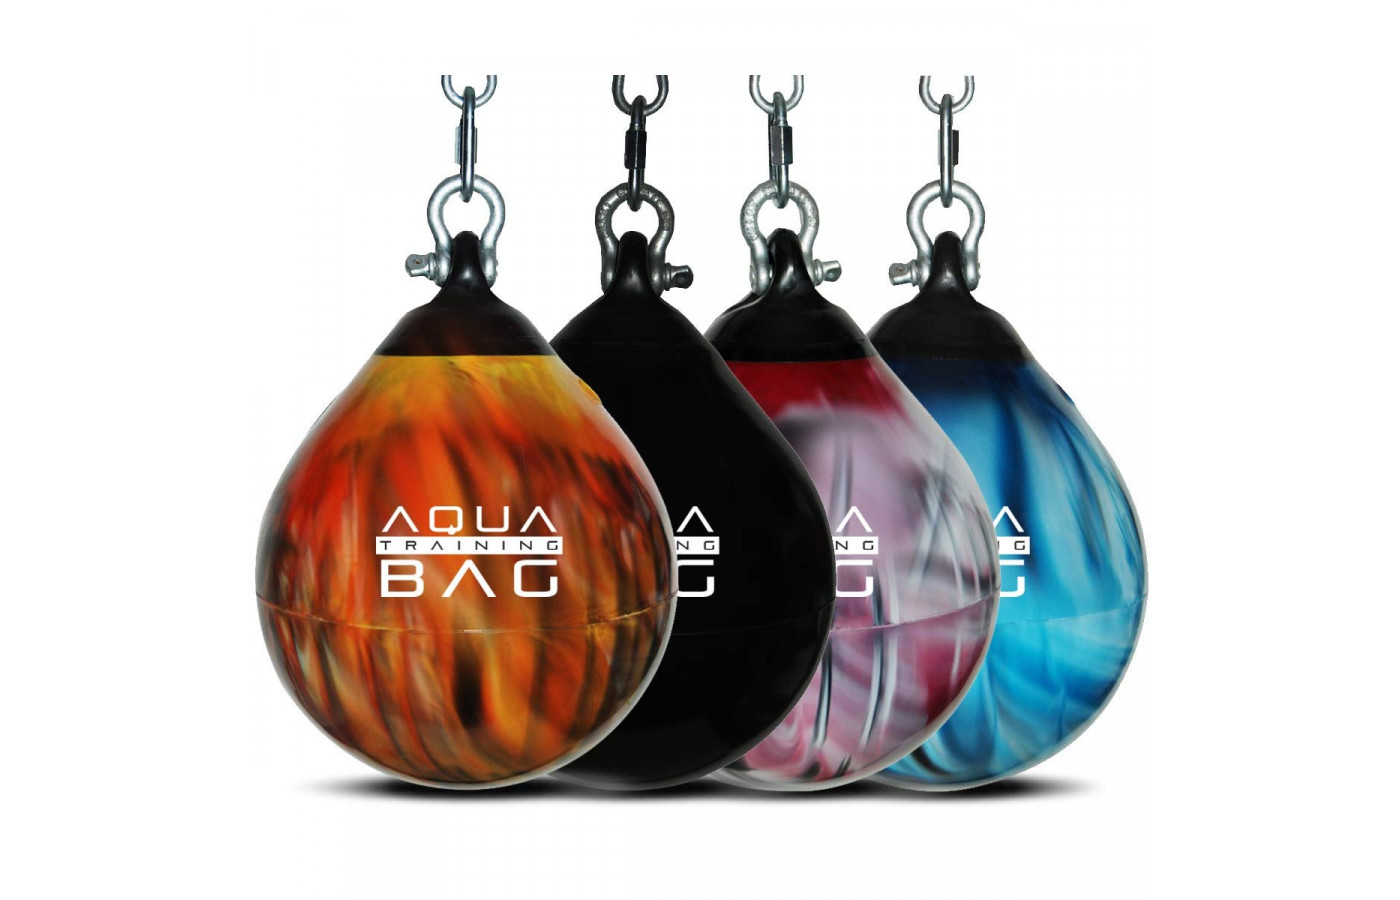 aqua training bag all colors